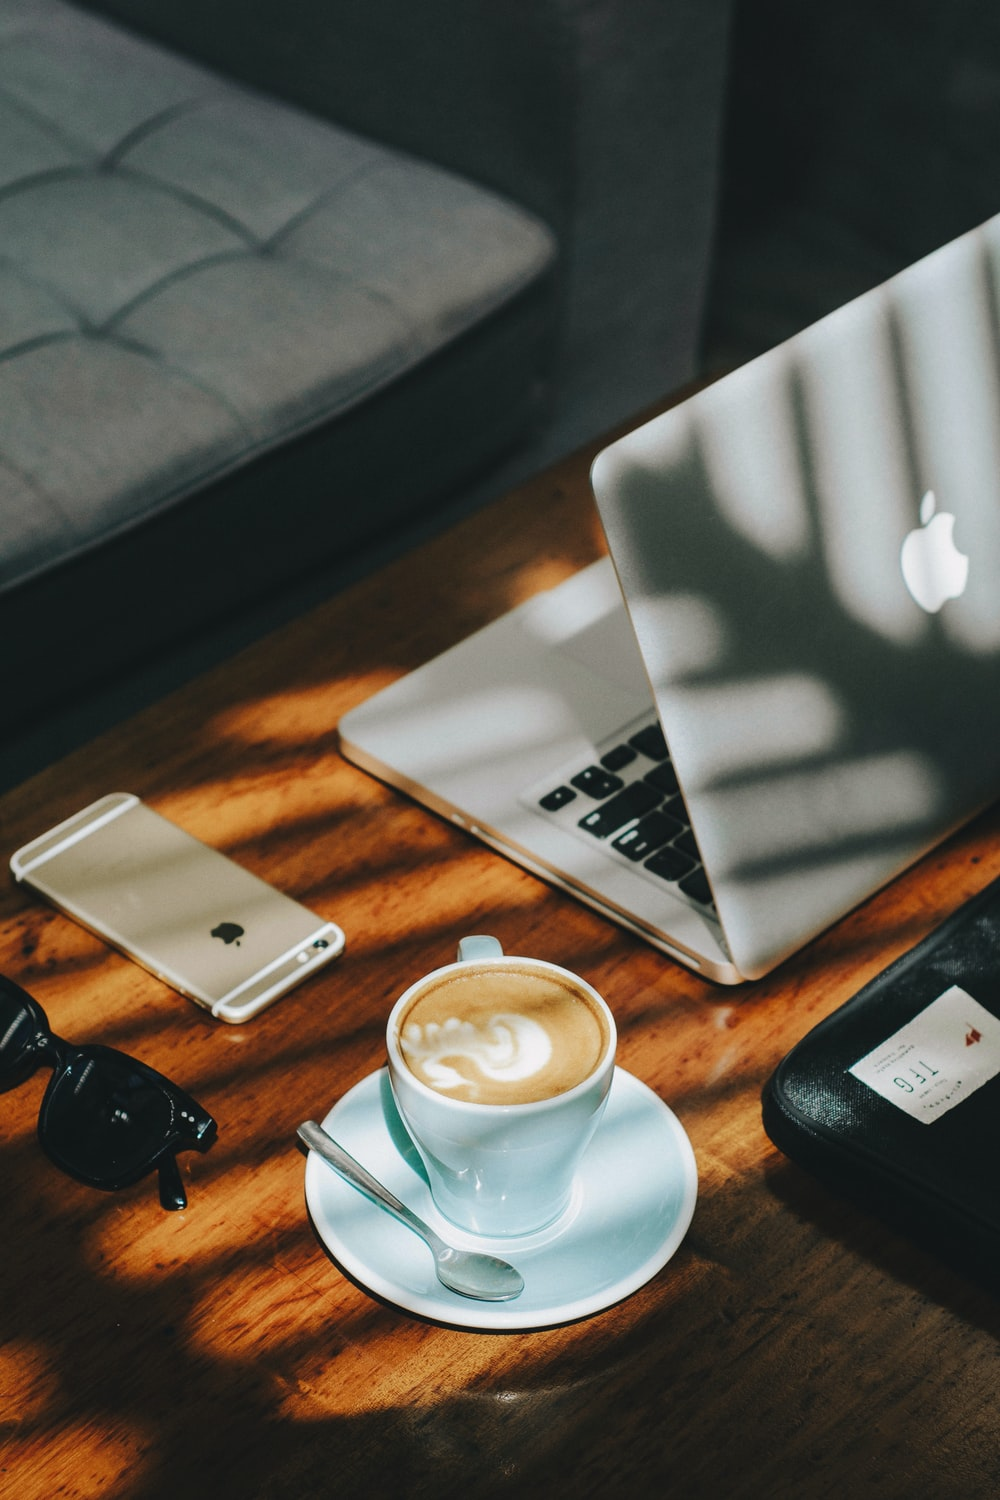 cappuccino in white ceramic cup with saucer beside gold iPhone 6s and laptop